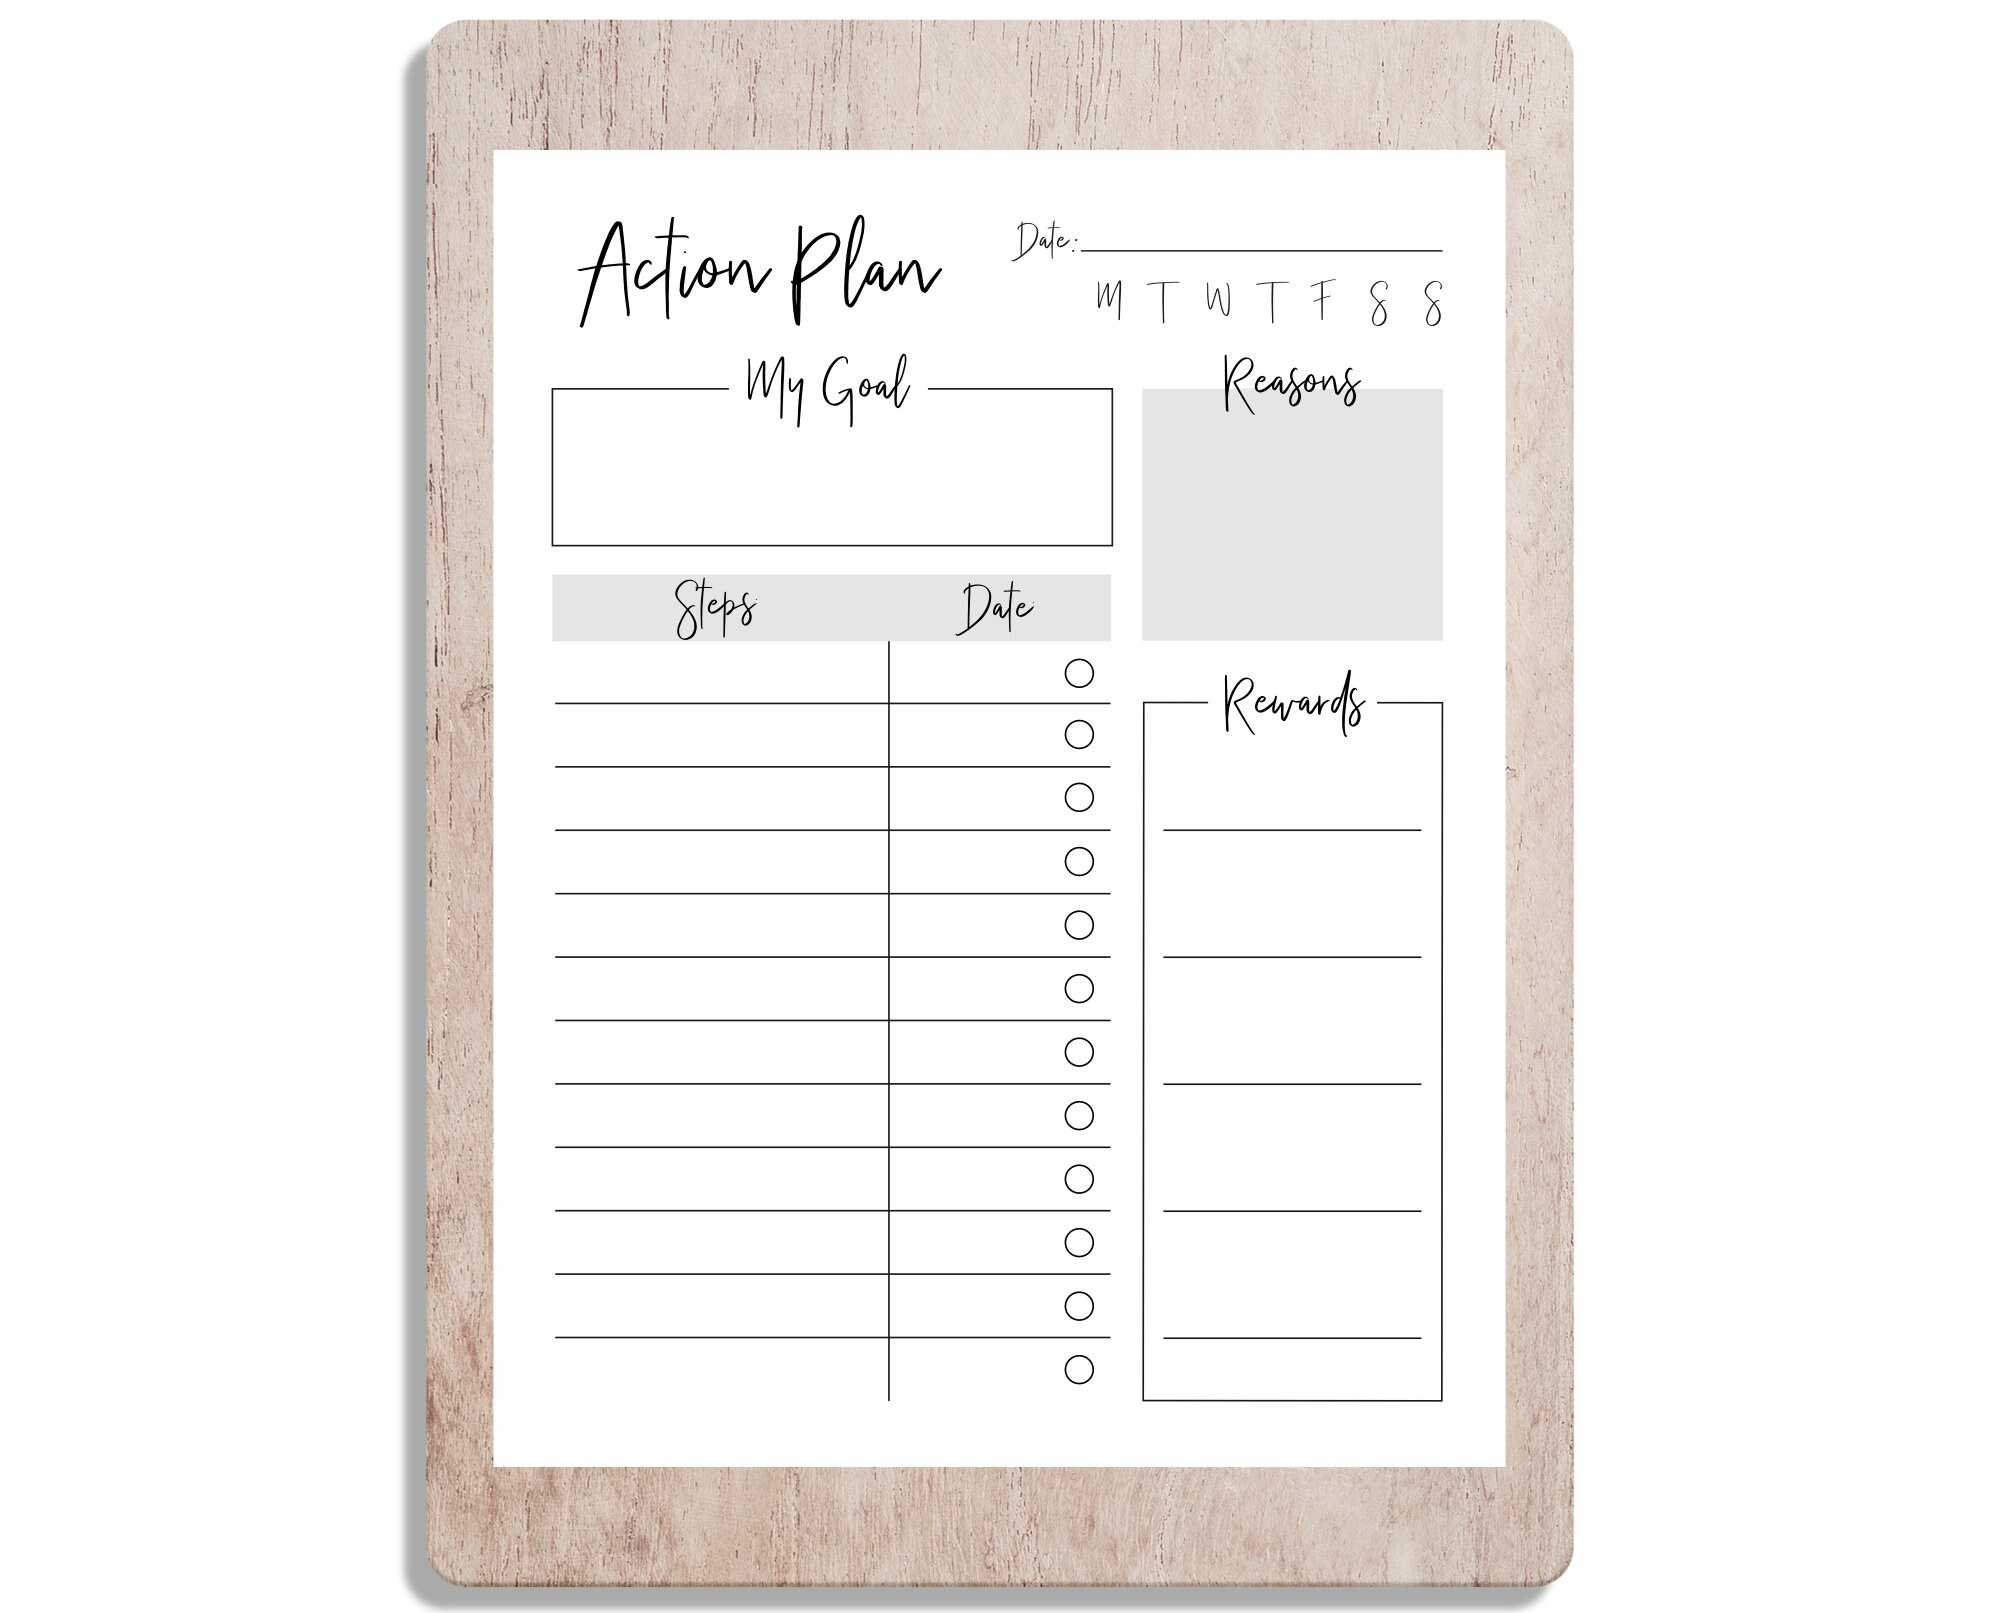 Printable Goal Action Plan Goal Goals Goals